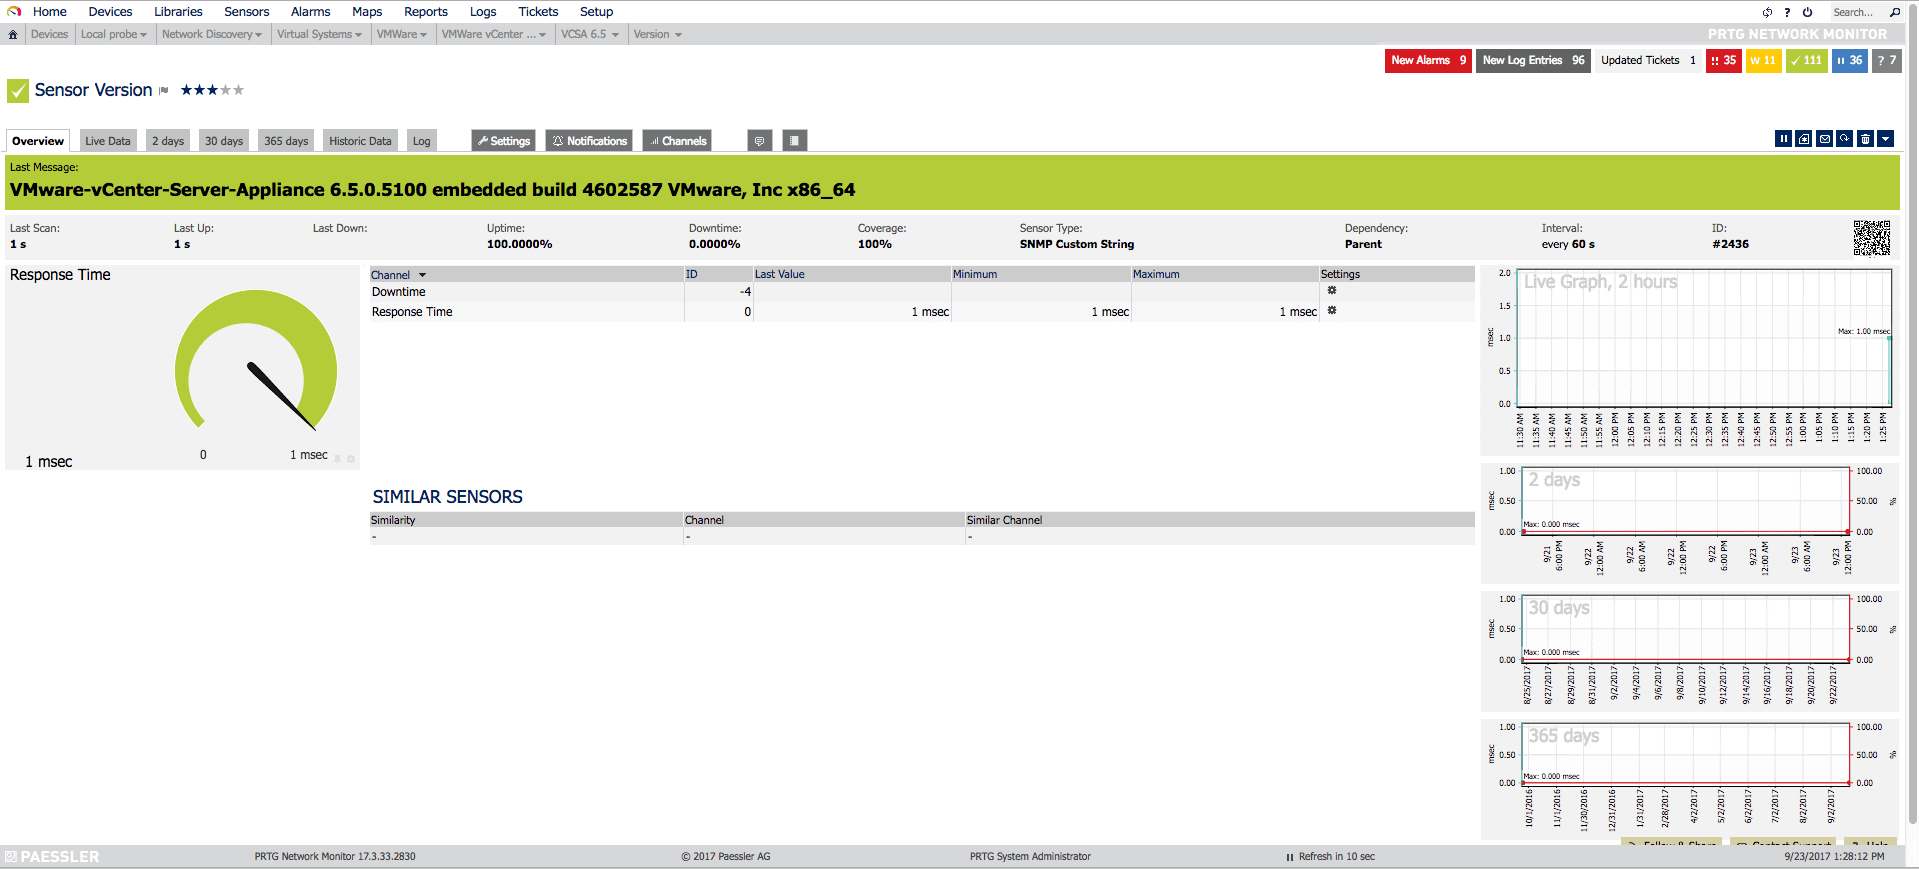 VMware: How to monitor your VCSA 6 5 using SNMP and PRTG Network